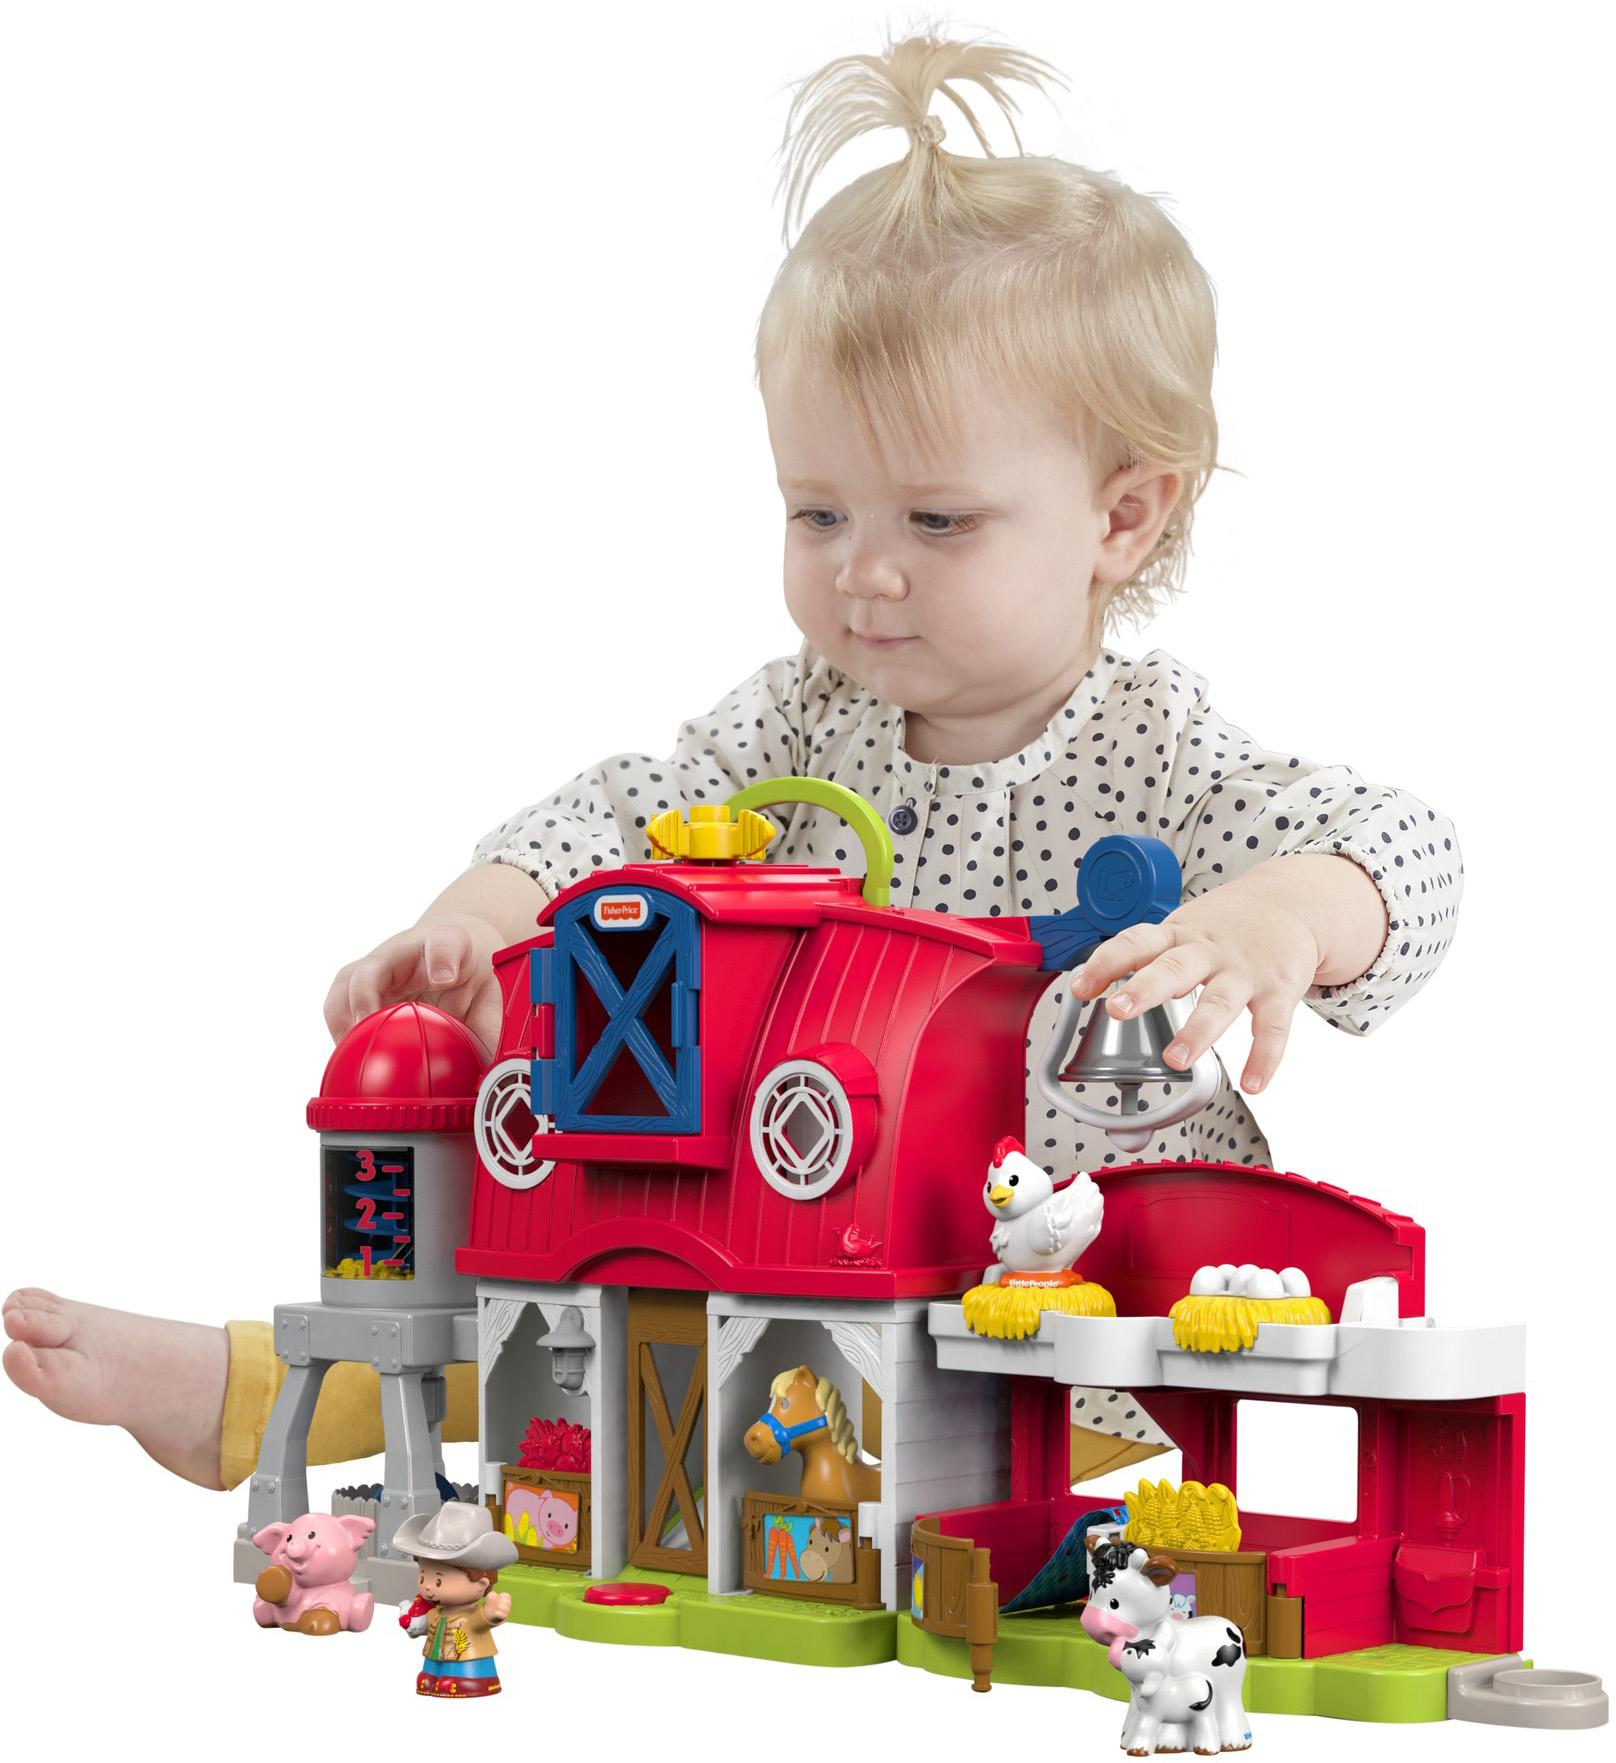 Amazon.com: Fisher-Price Little People Caring for Animals ...